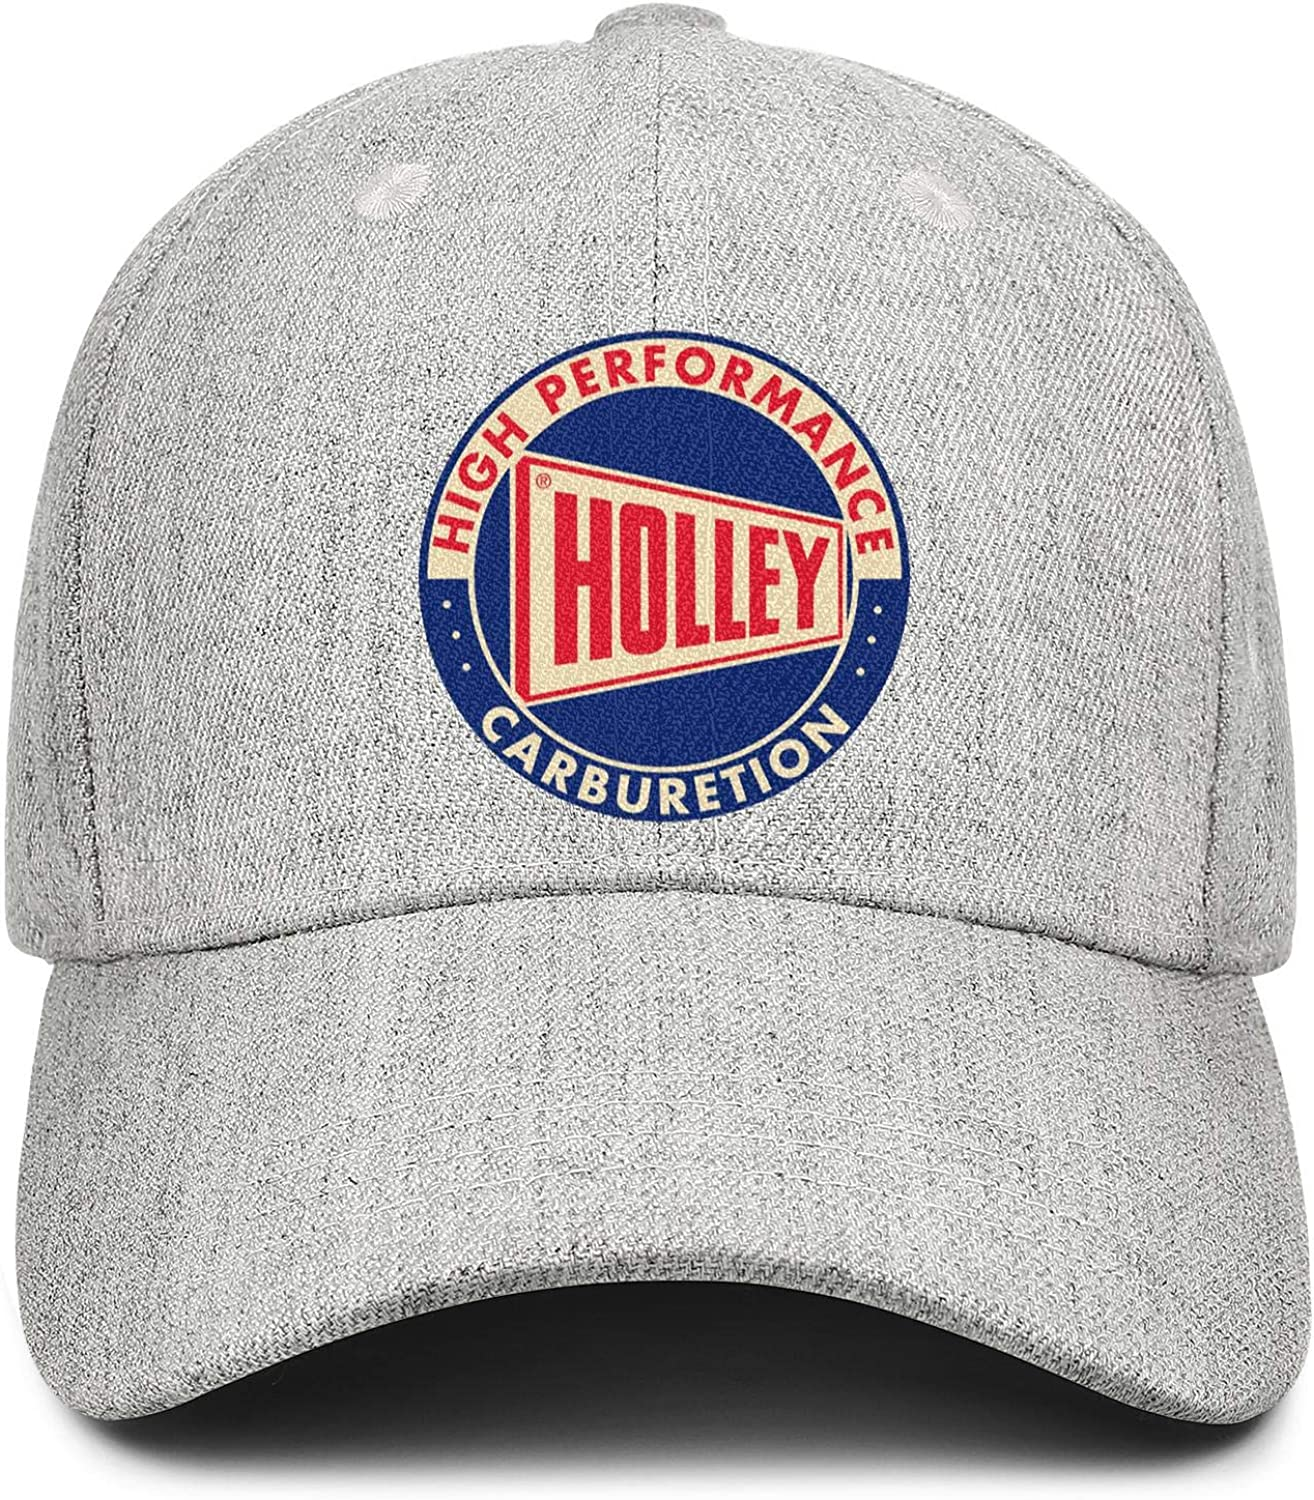 Luxurious Wool Blend Baseball Cap Mens Womens Cotton Fishing Hat Logos-Holley-Performance-Products